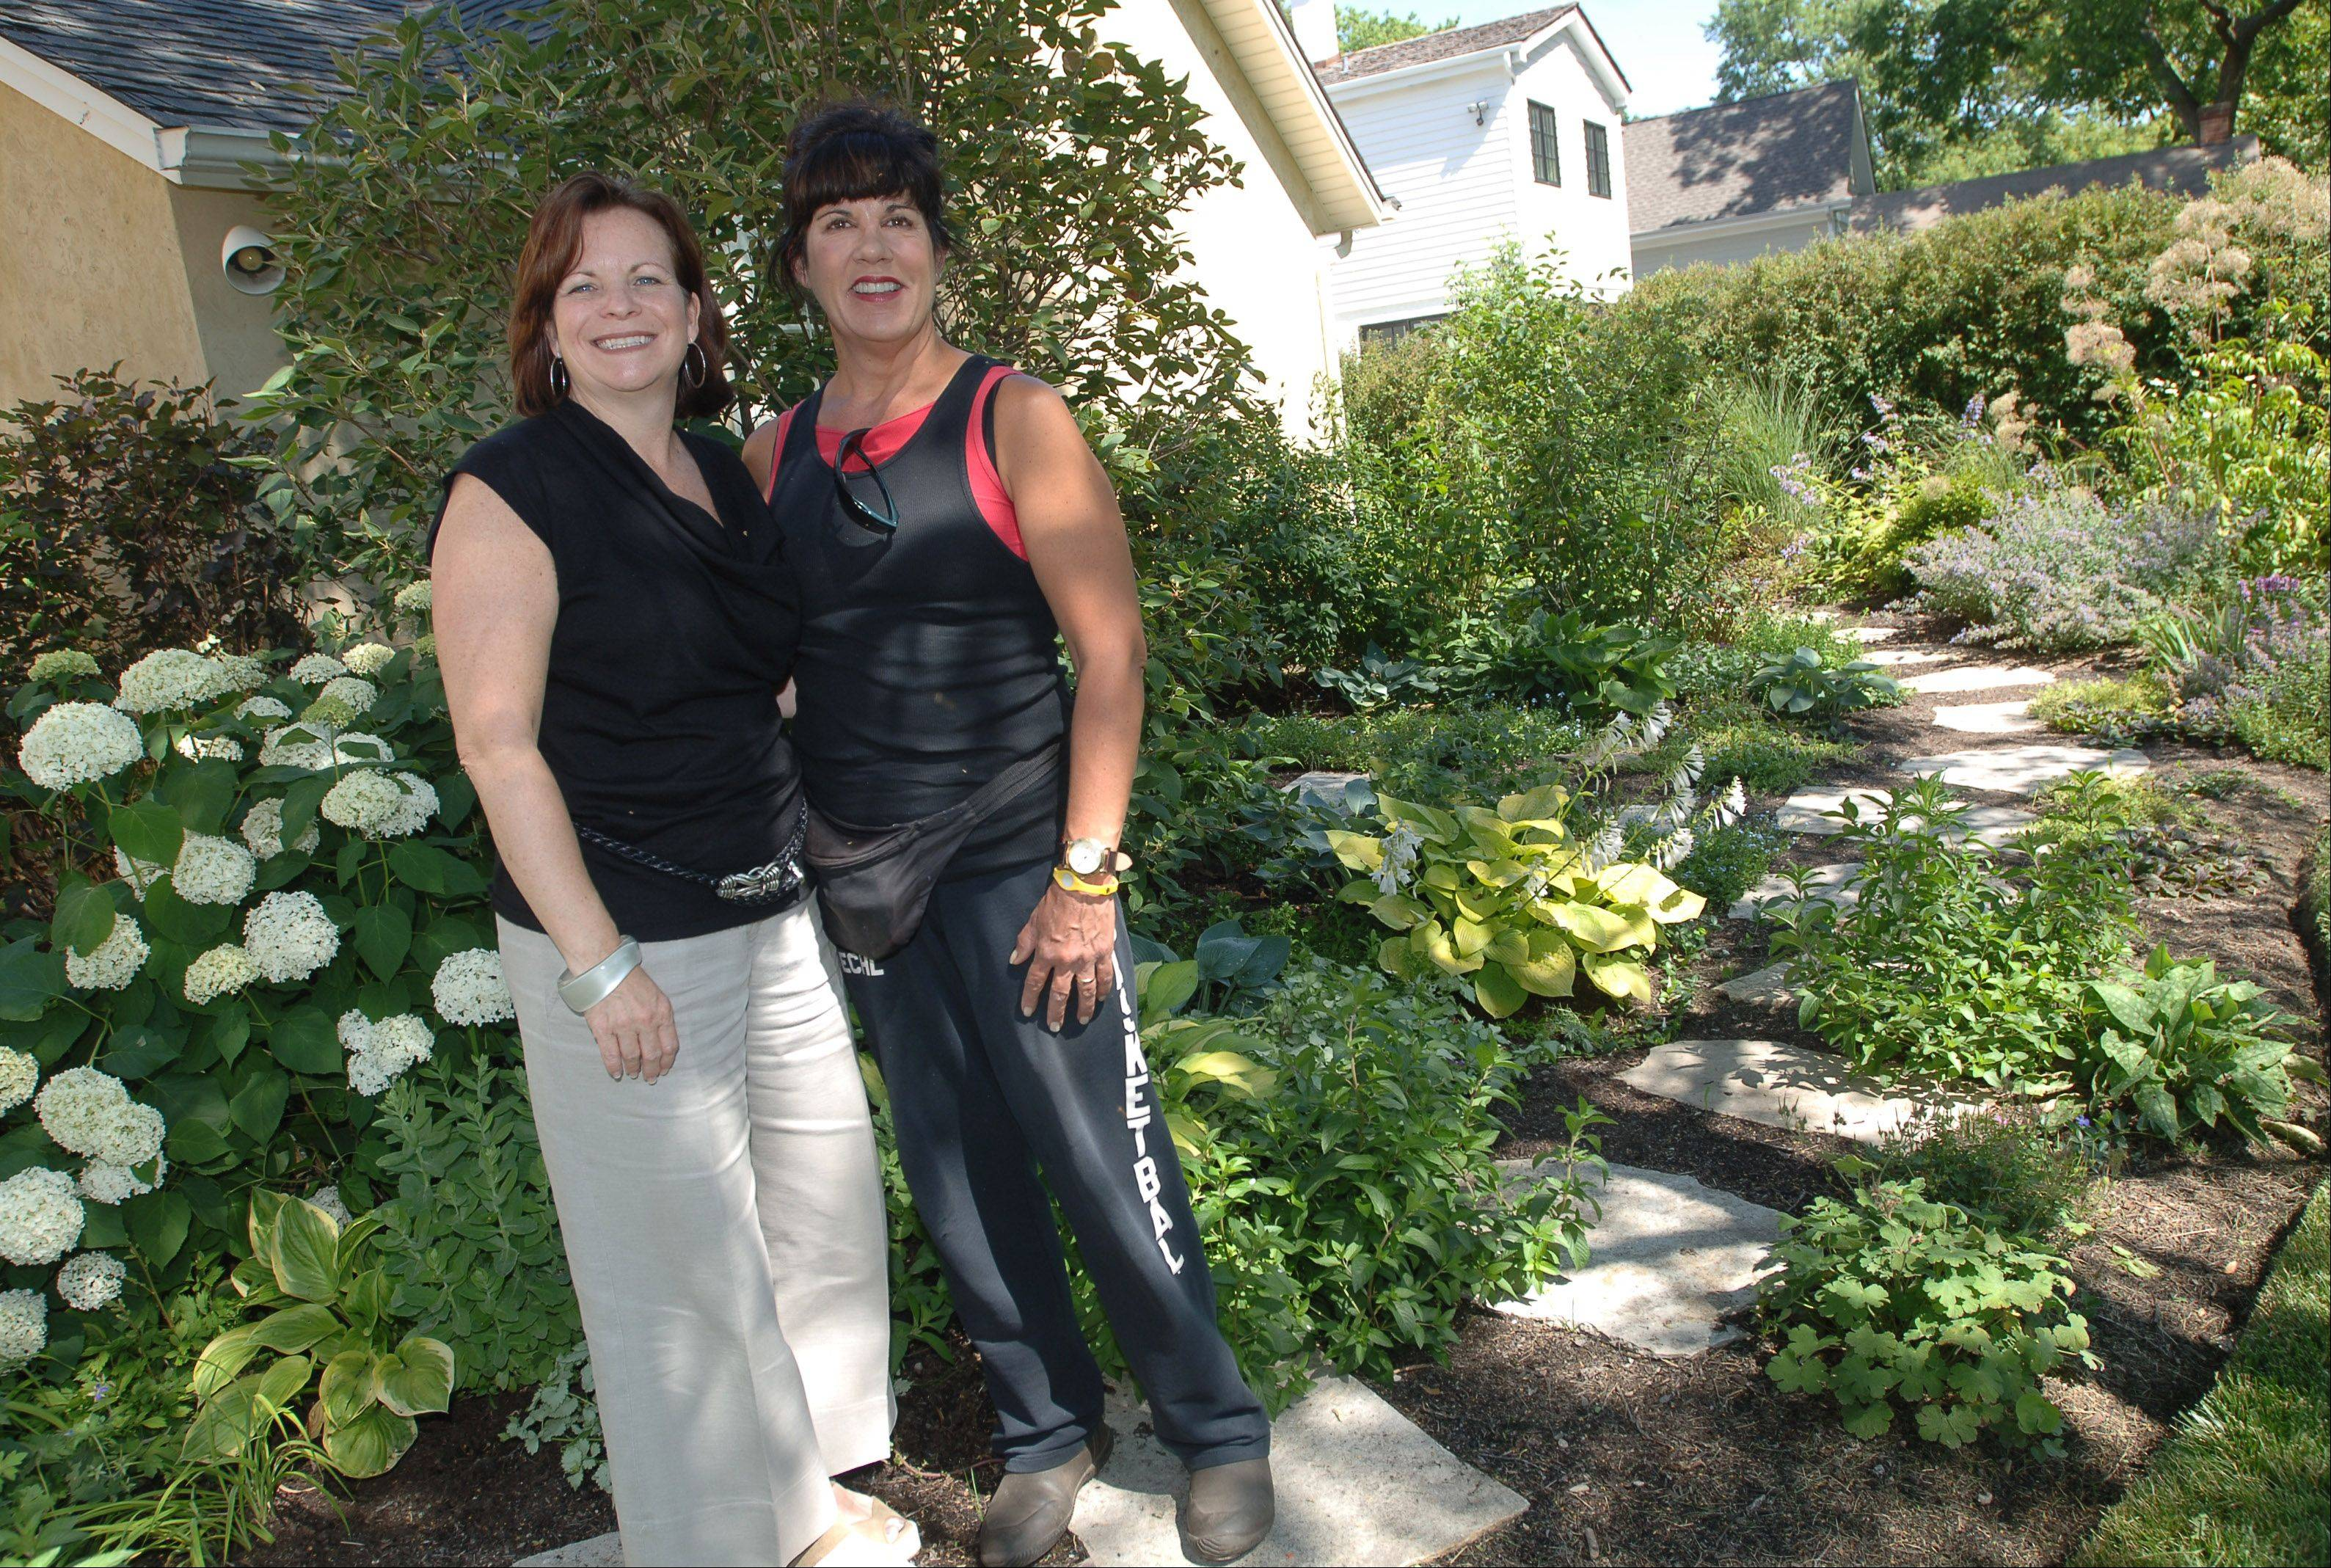 Suzanne Deichl of Suzennials in Libertyville, right, is one of the team members who worked with Susan Brunstrum to design her gardens.